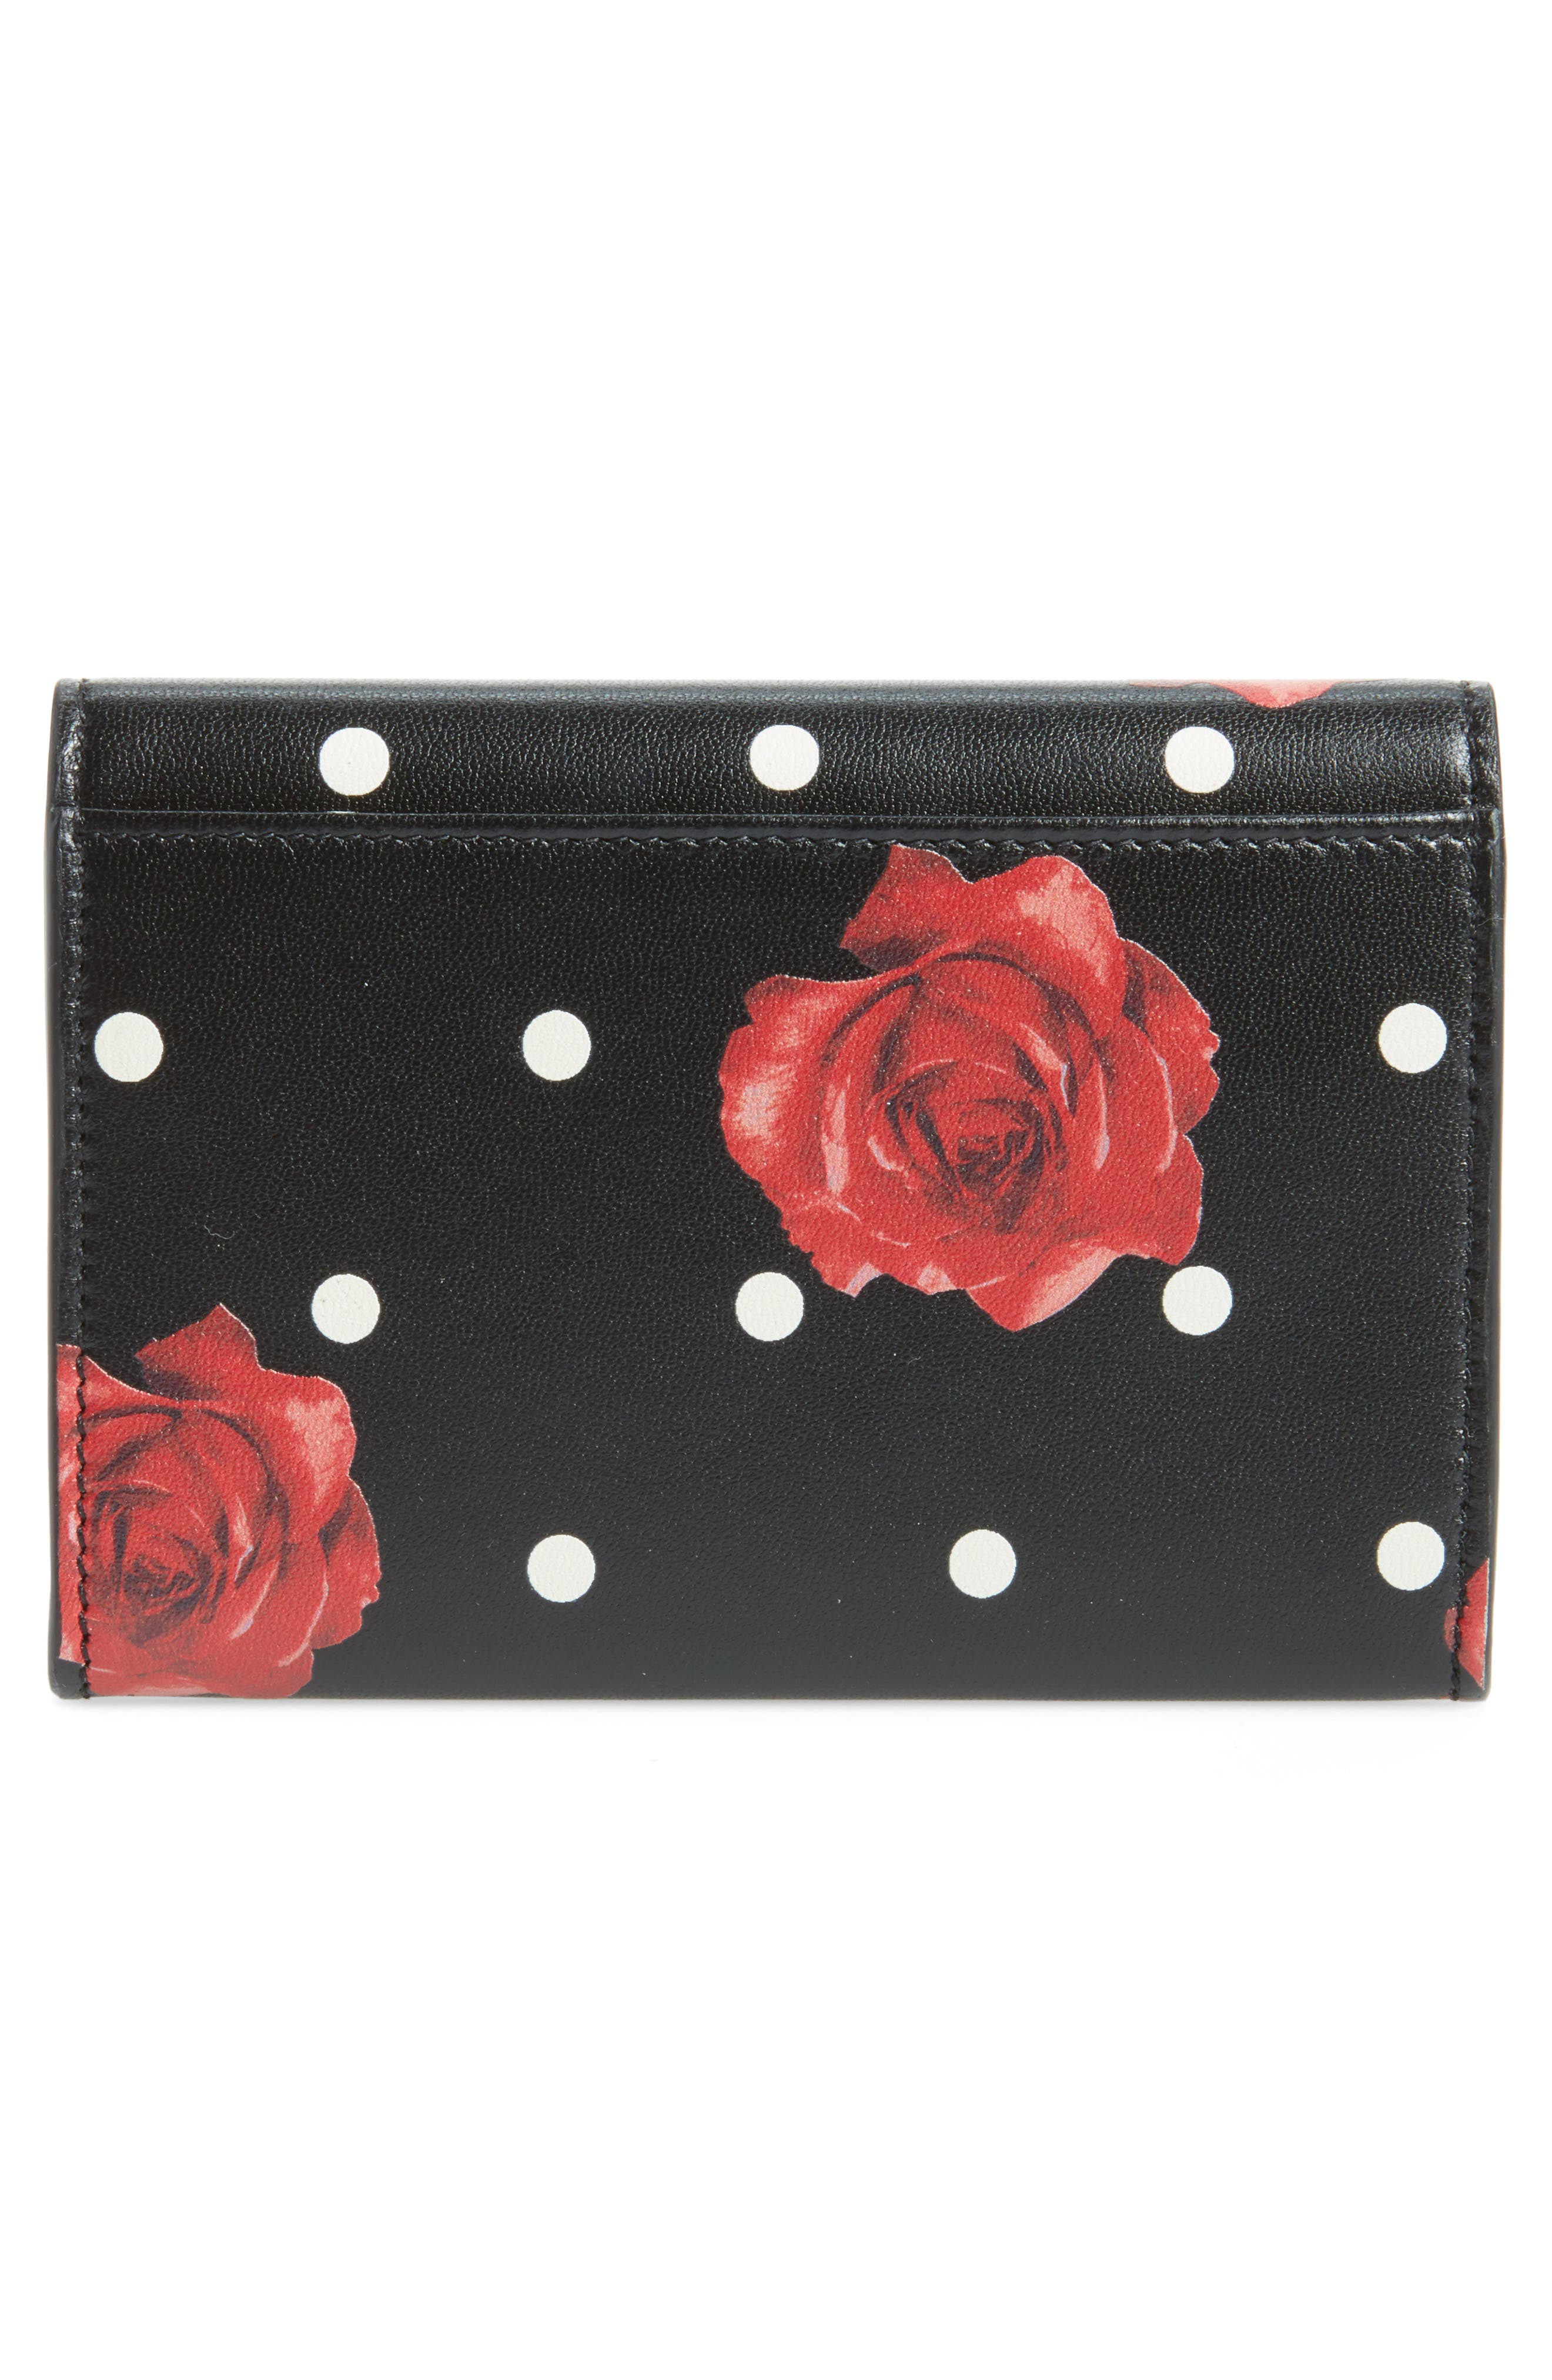 Rose & Polka Dot Small Leather French Wallet,                             Alternate thumbnail 4, color,                             Black/ Multi